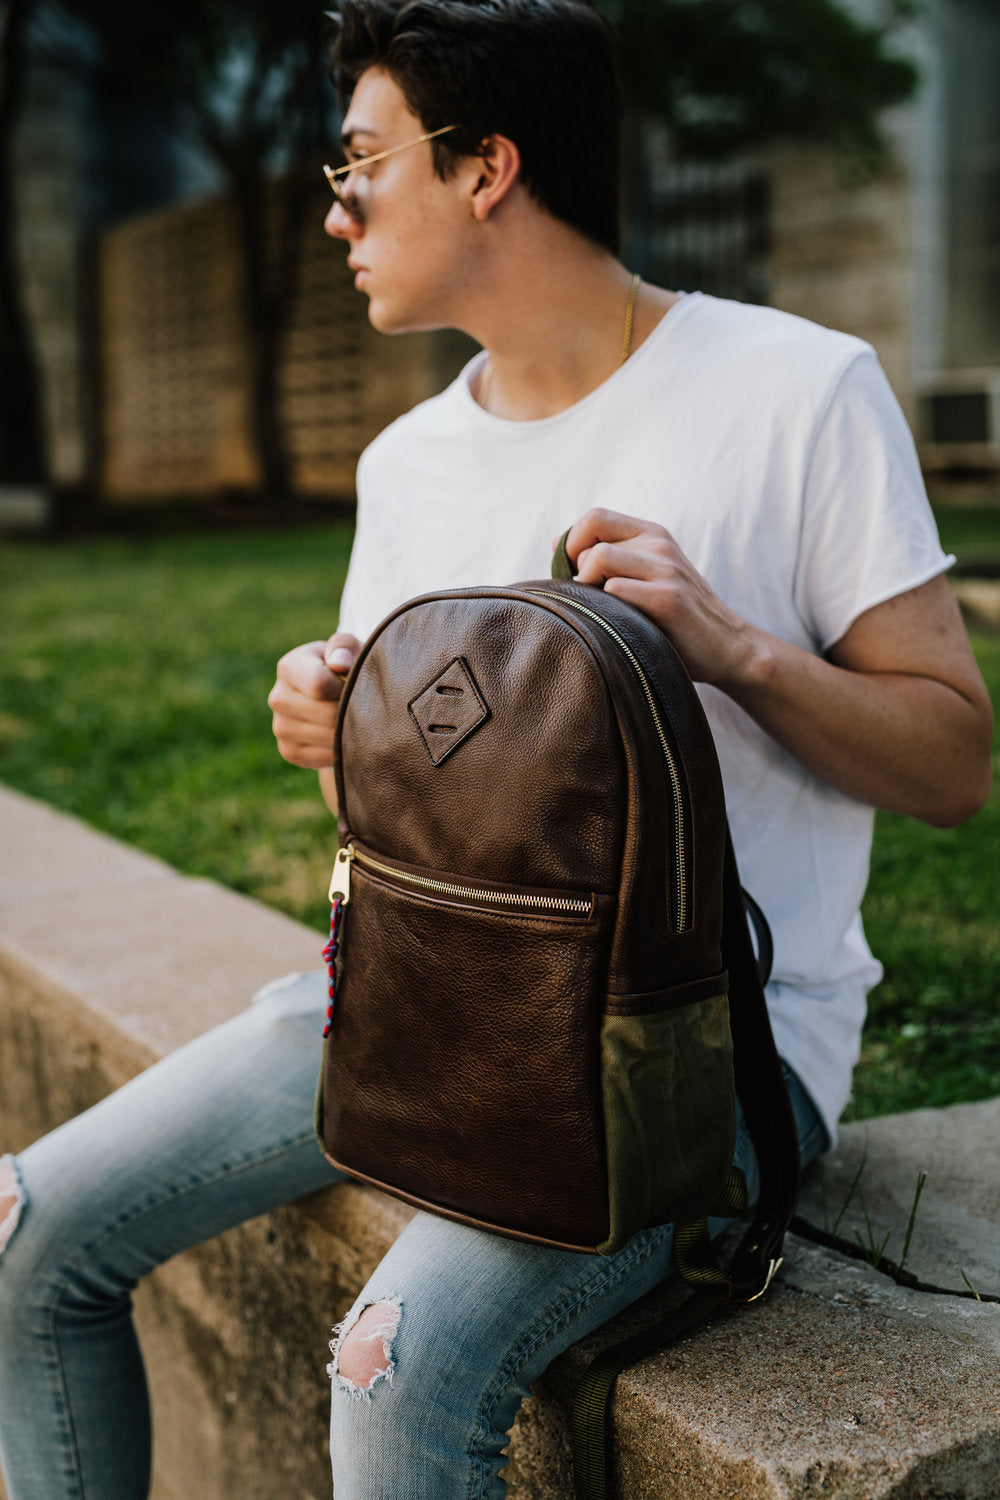 The Everyday Backpack